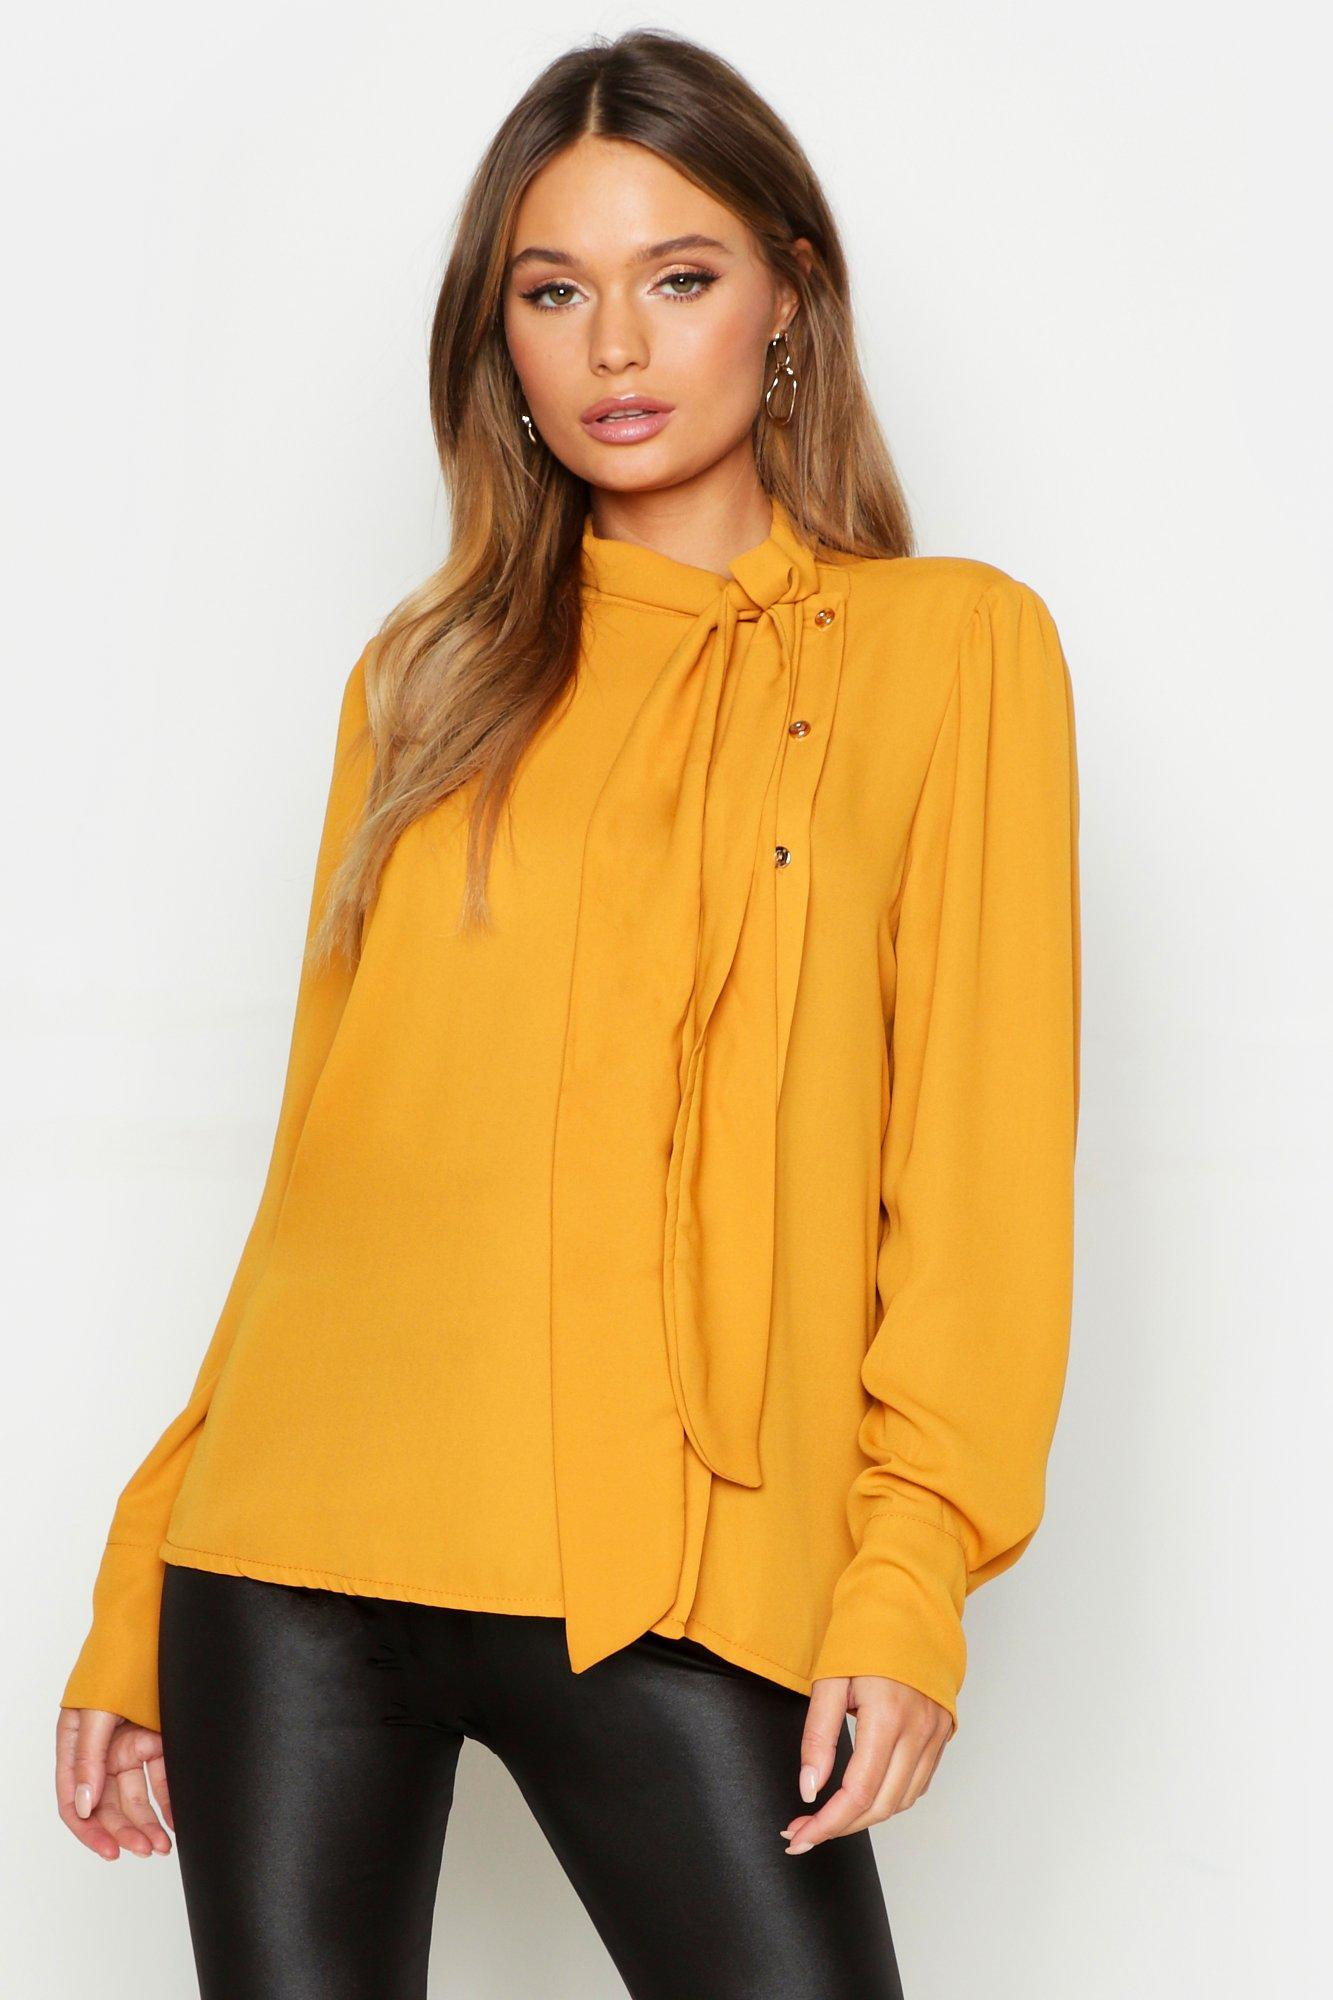 08818f9a698f1 Boohoo Woven Tie Neck Button Detail Blouse in Yellow - Lyst